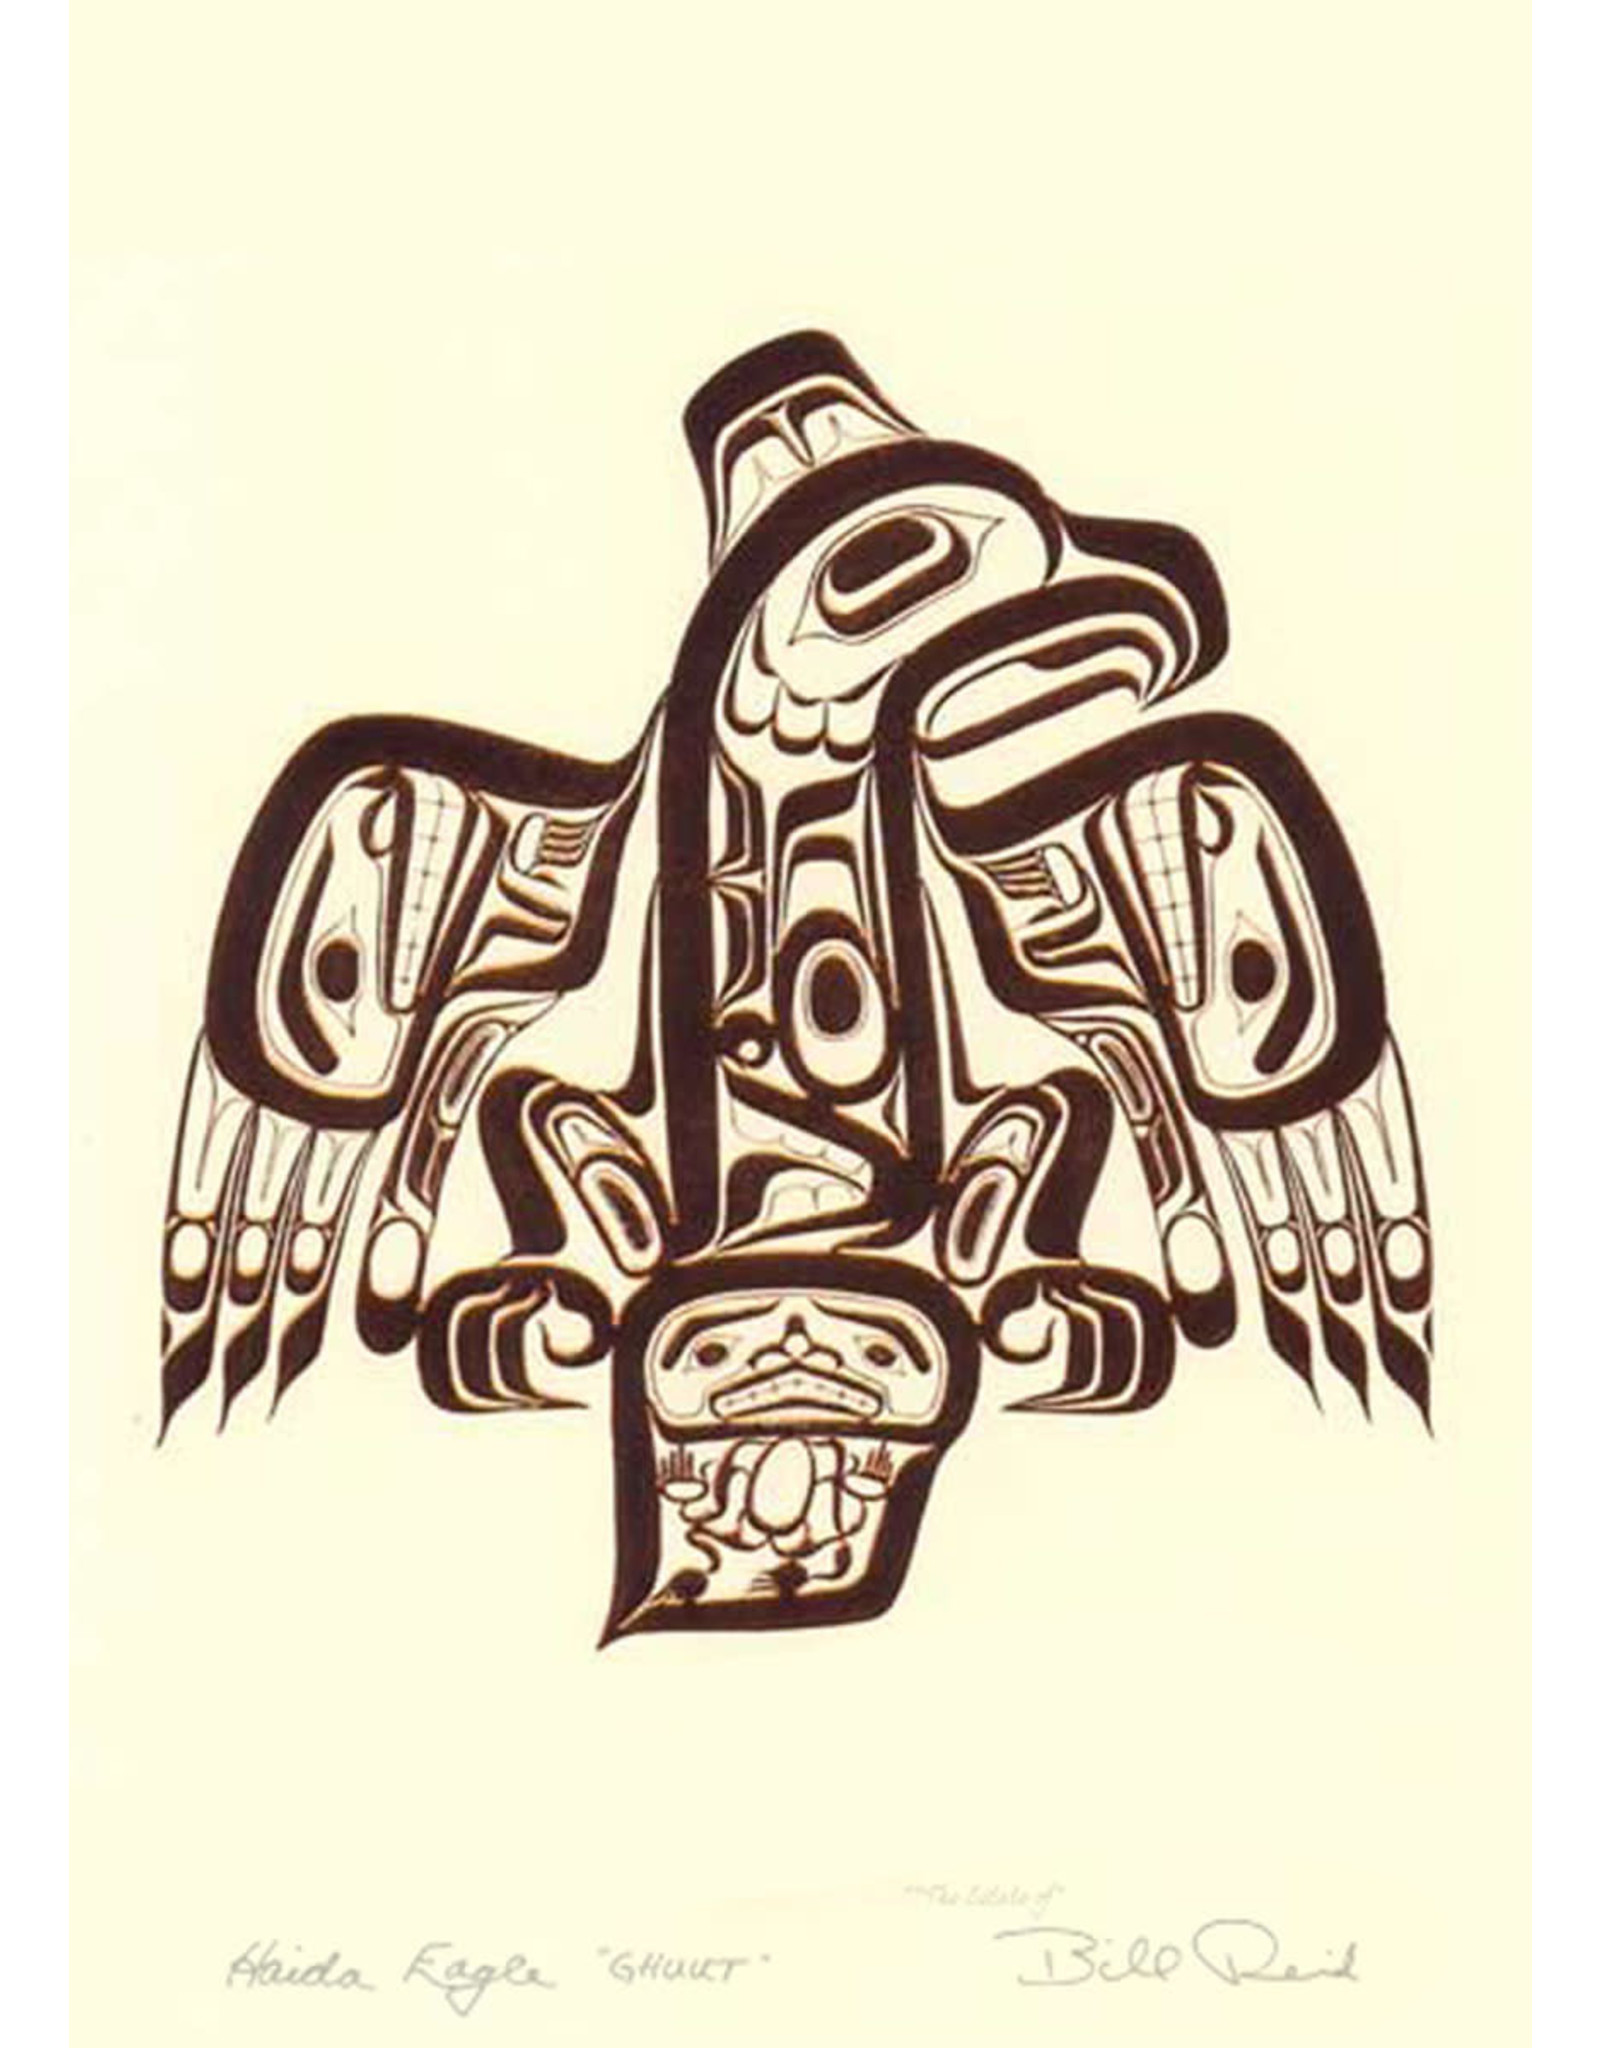 Haida Eagle Ghuut by Bill Reid Matted